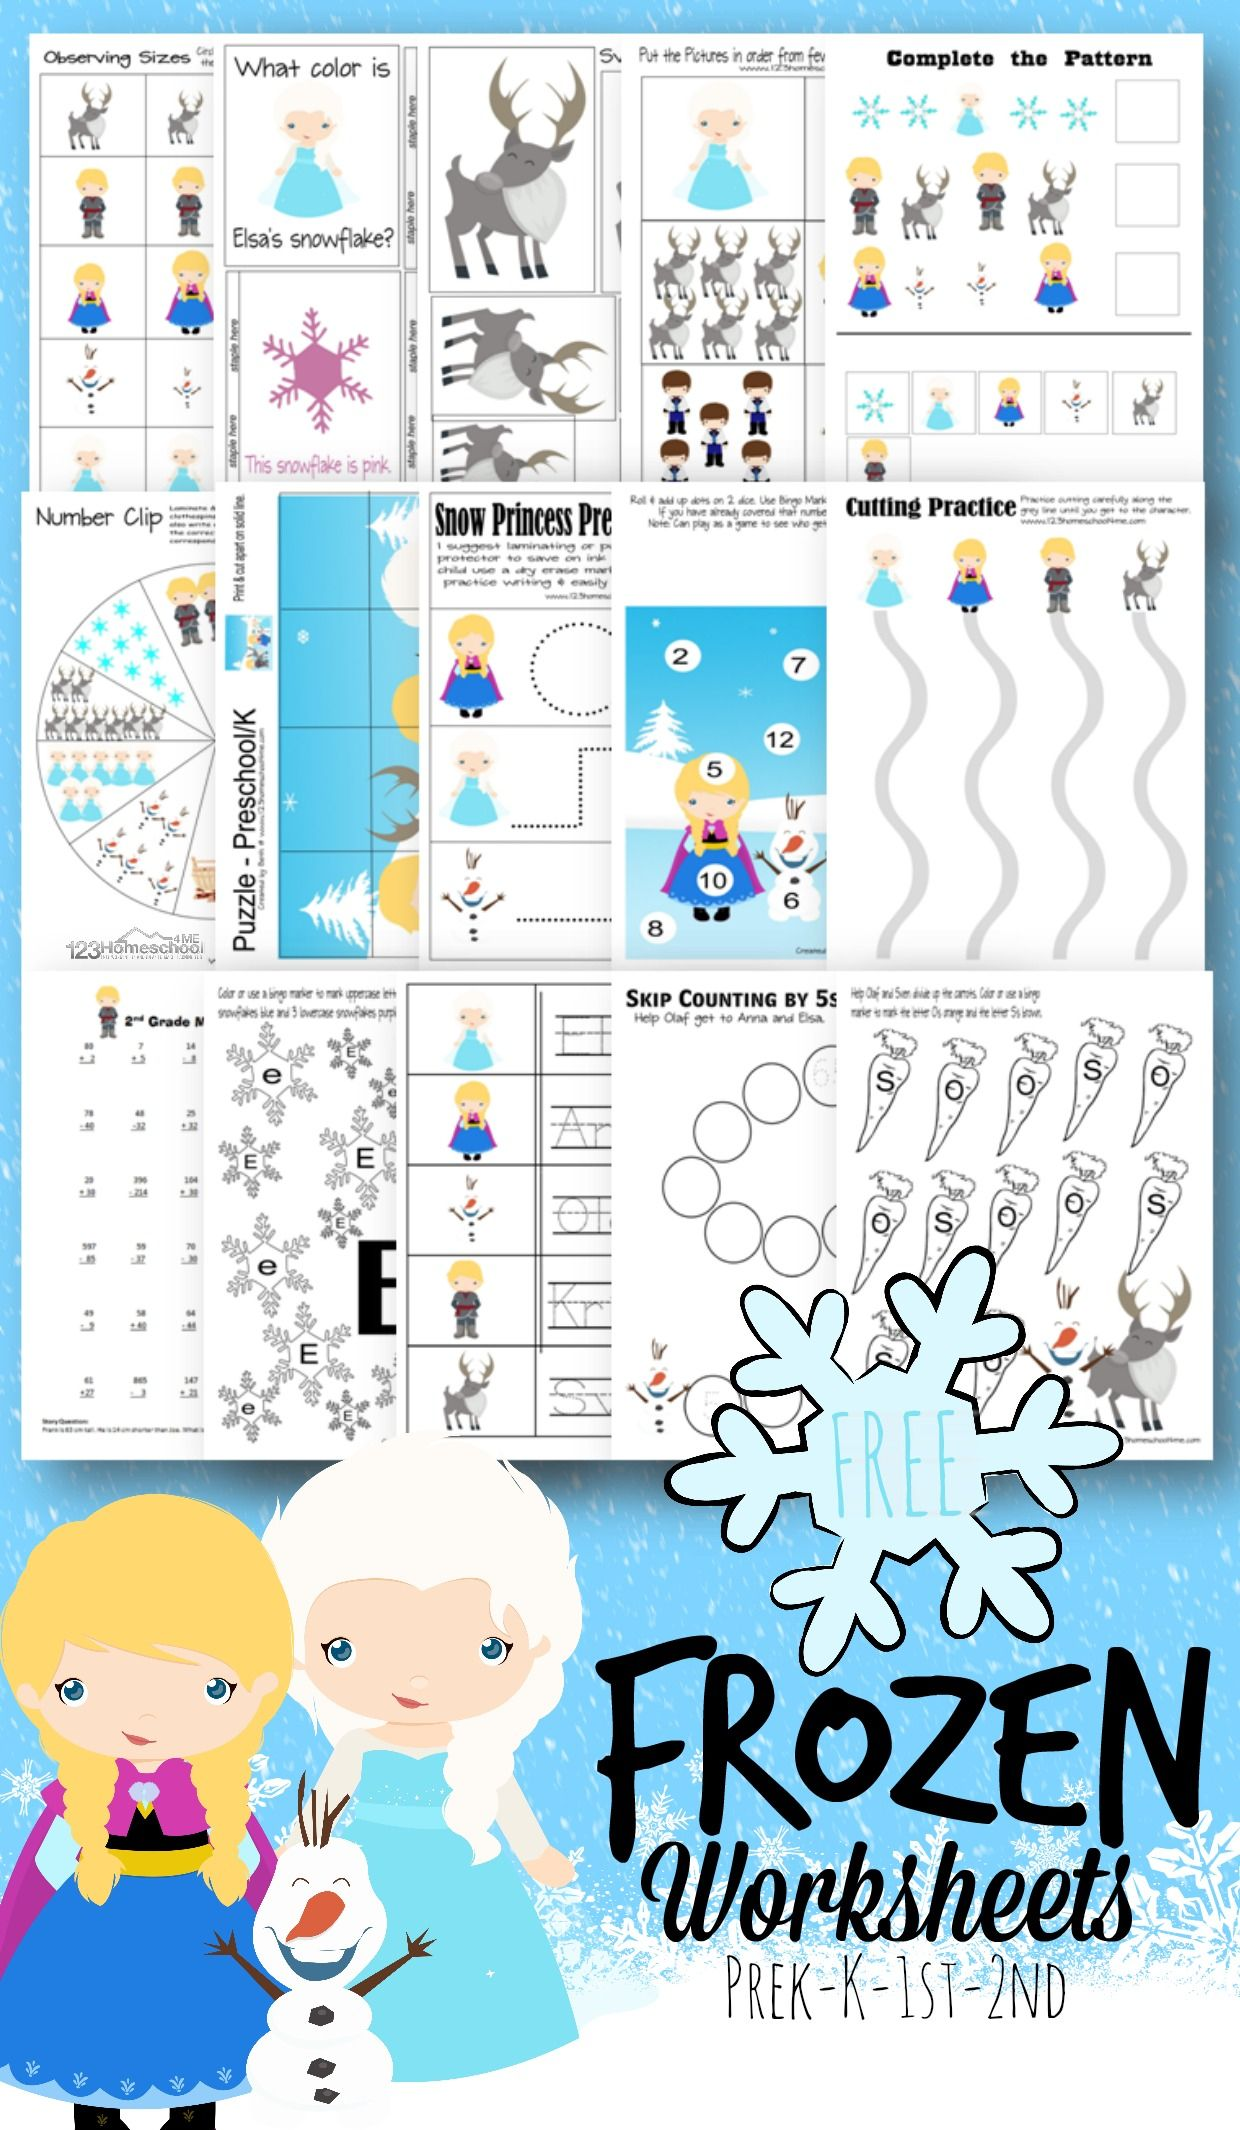 Free Frozen Worksheets For Kids